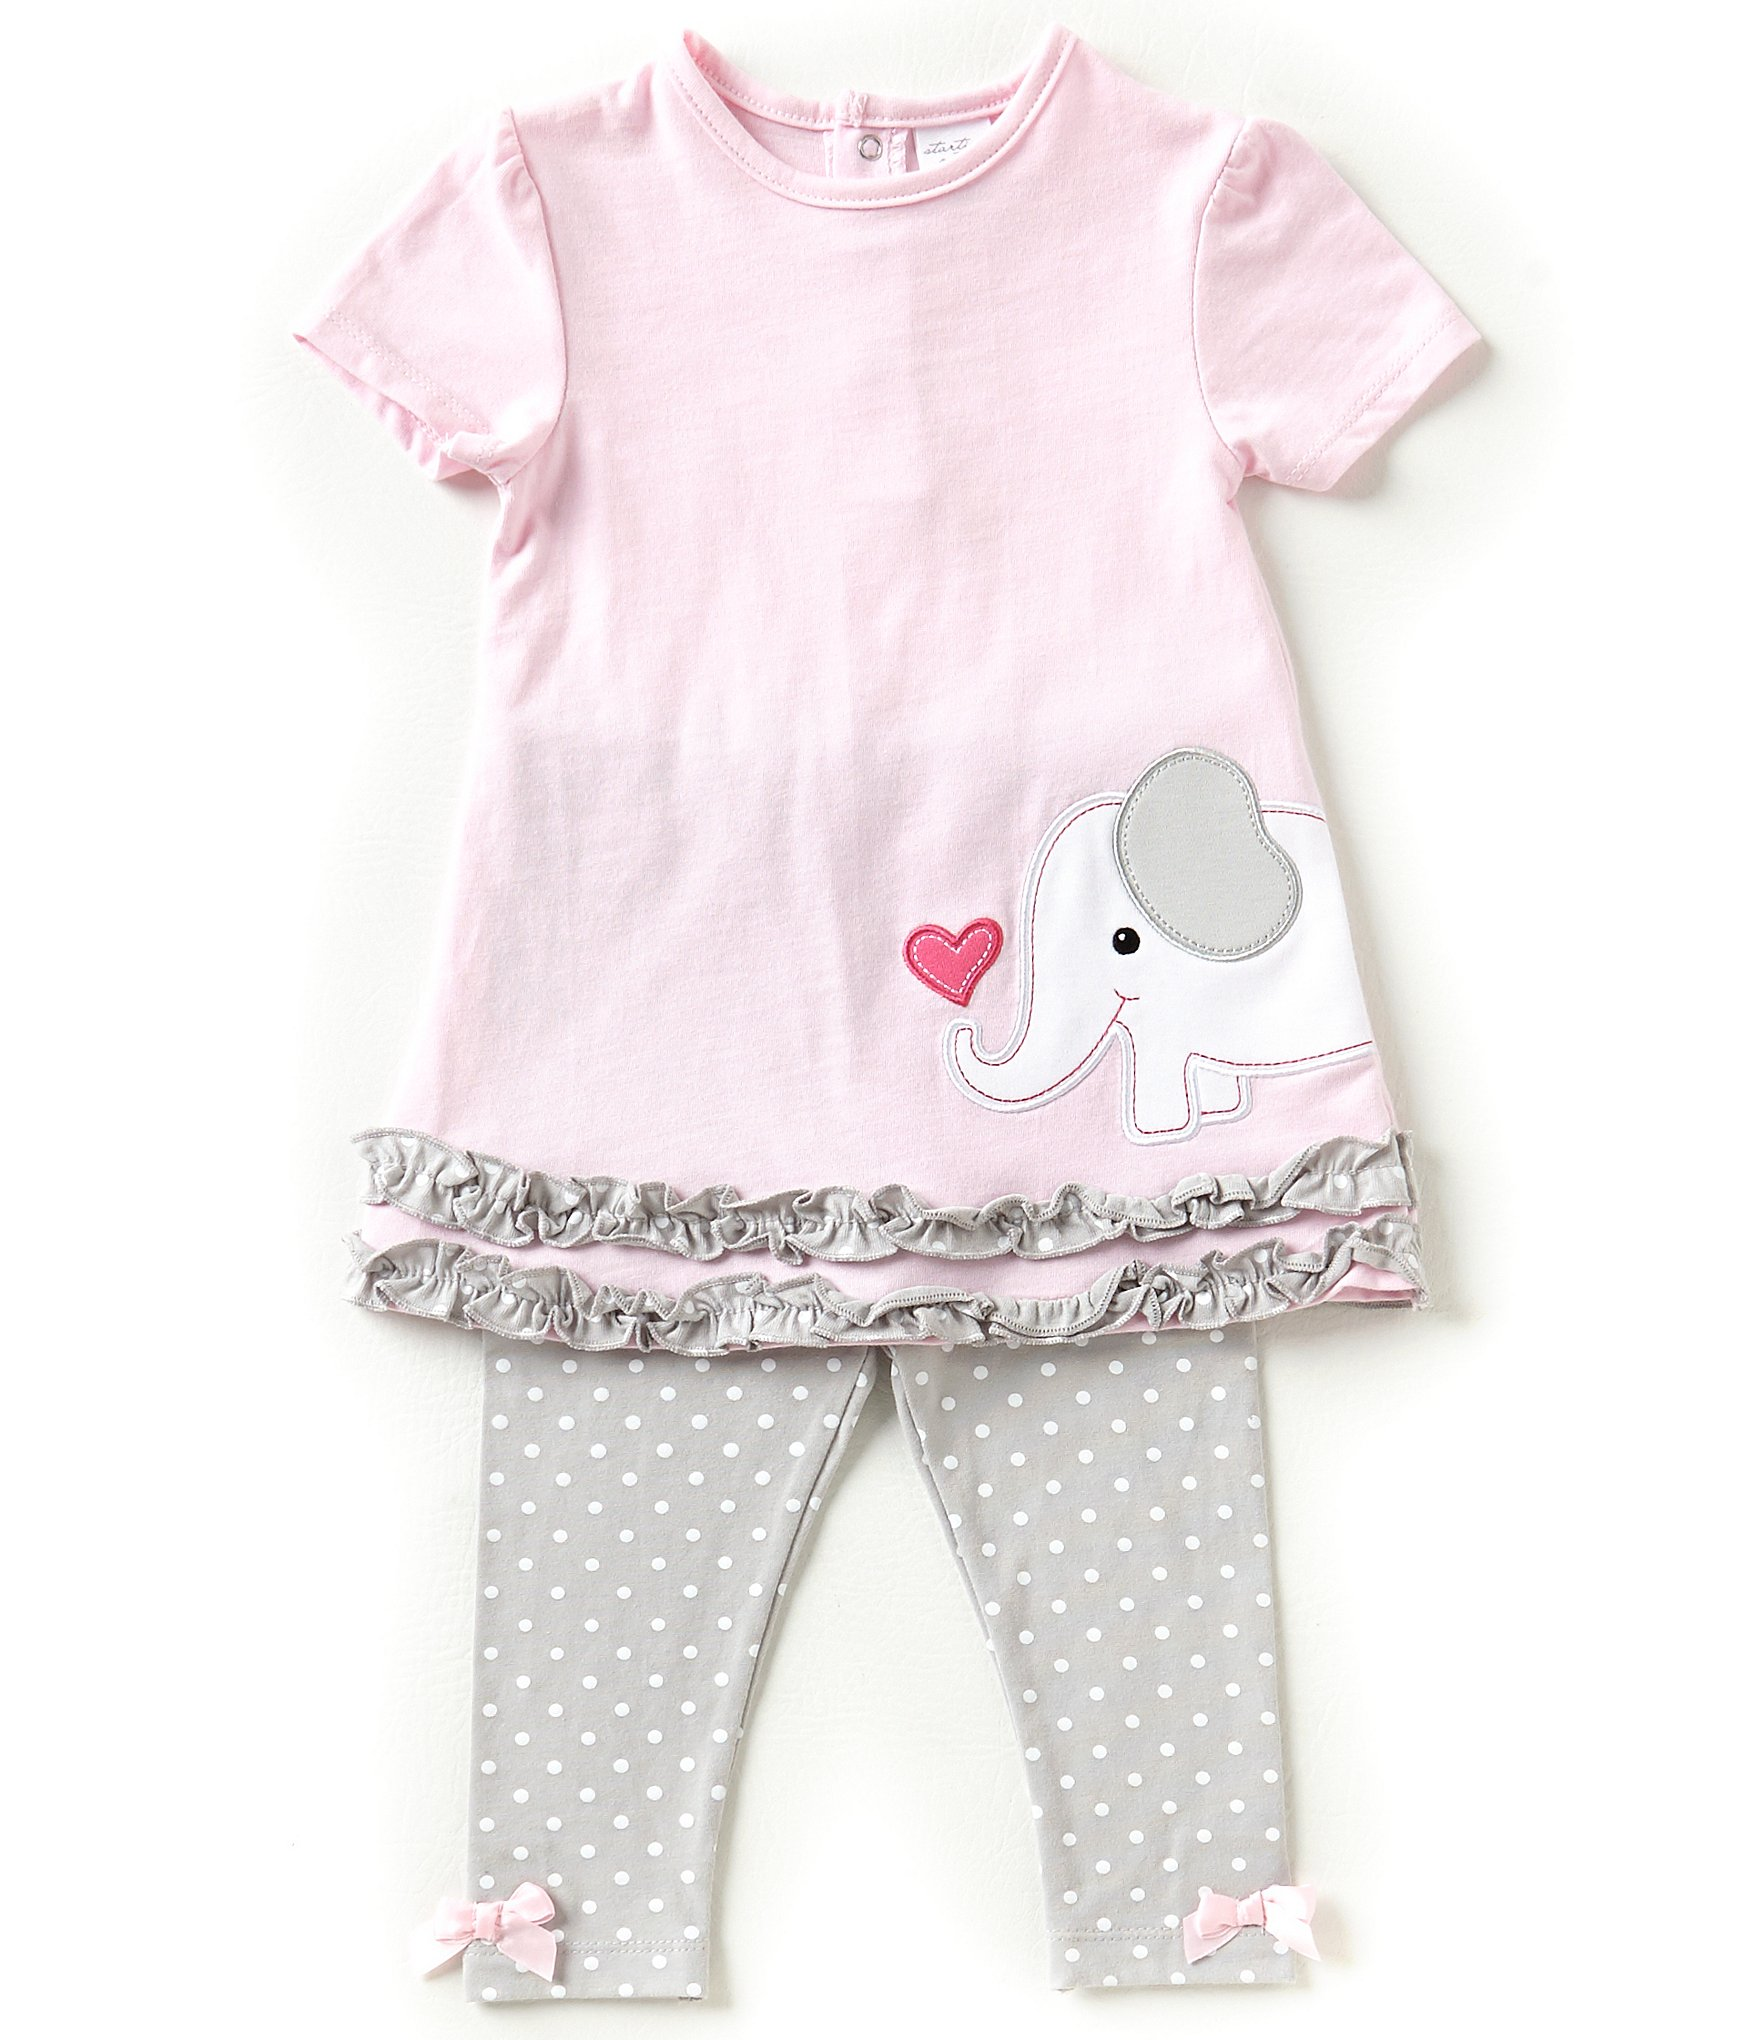 Find the best baby girl clothing for your little one StyleSkier